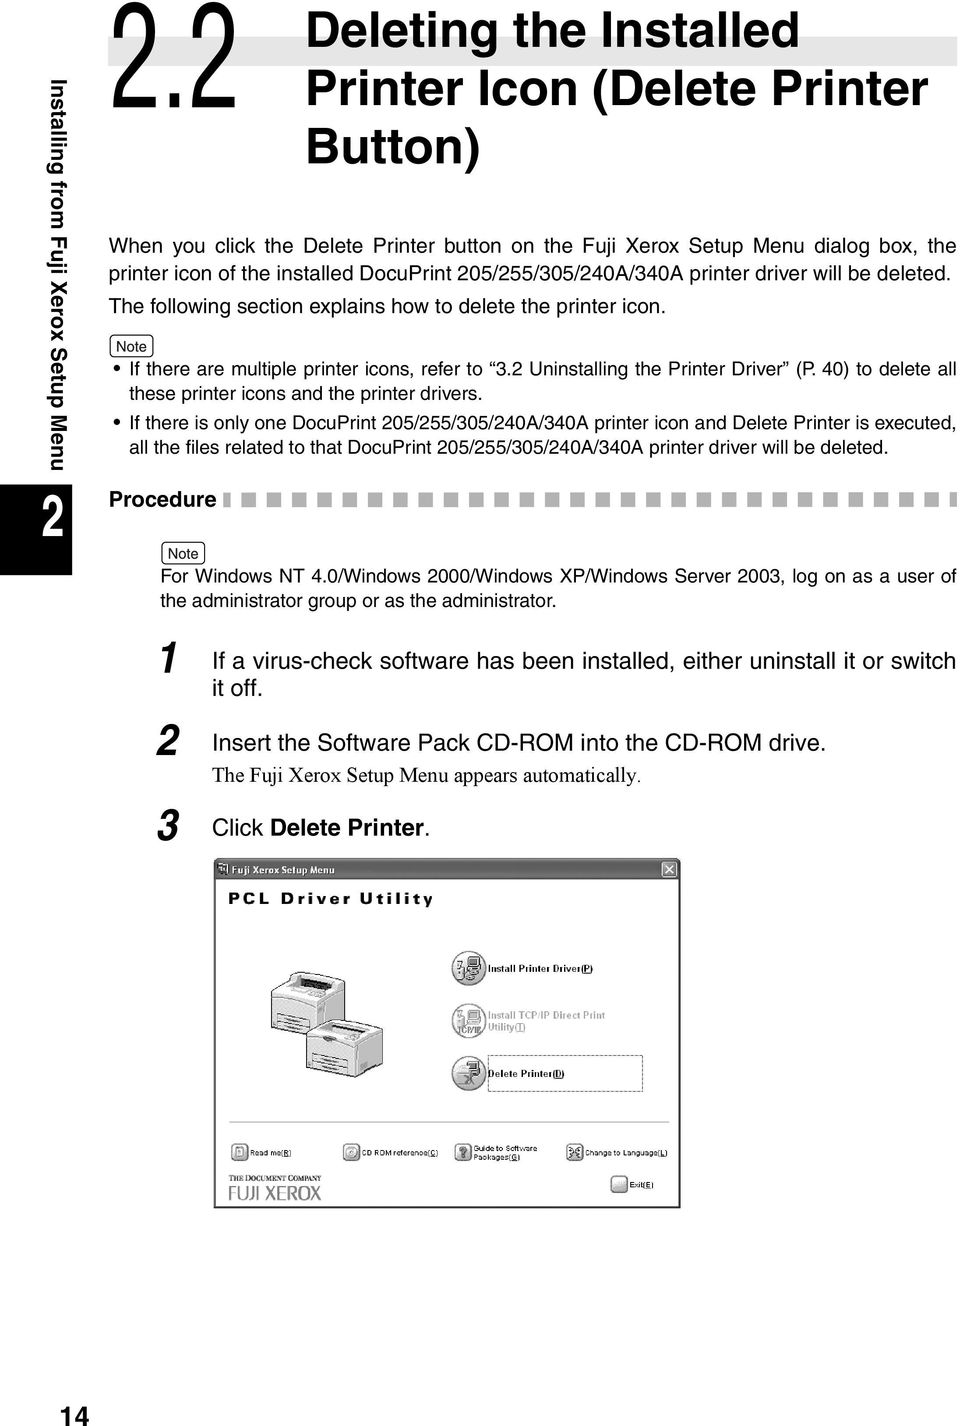 205/255/305/240A/340A printer driver will be deleted. The following section explains how to delete the printer icon. If there are multiple printer icons, refer to 3.